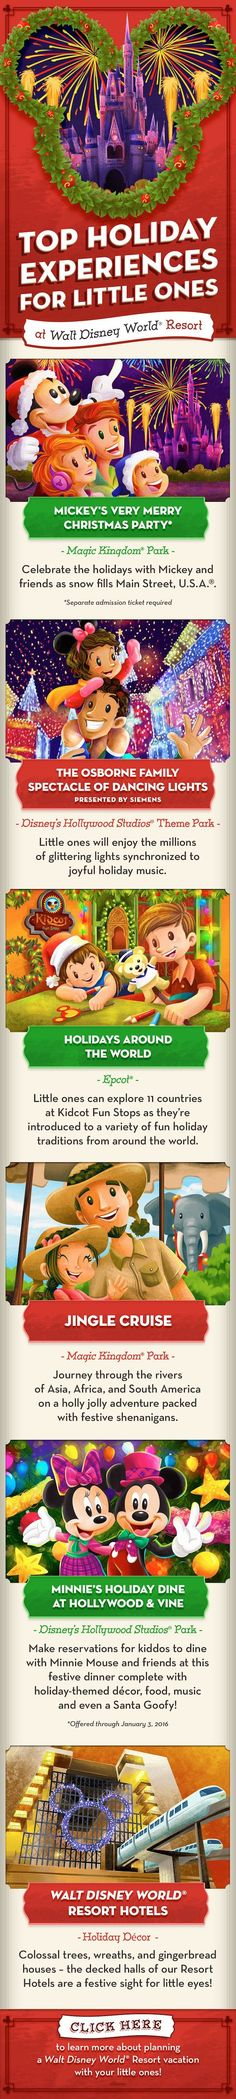 #DisneyKids:+Planning+a+Holiday+Trip+With+Little+Ones